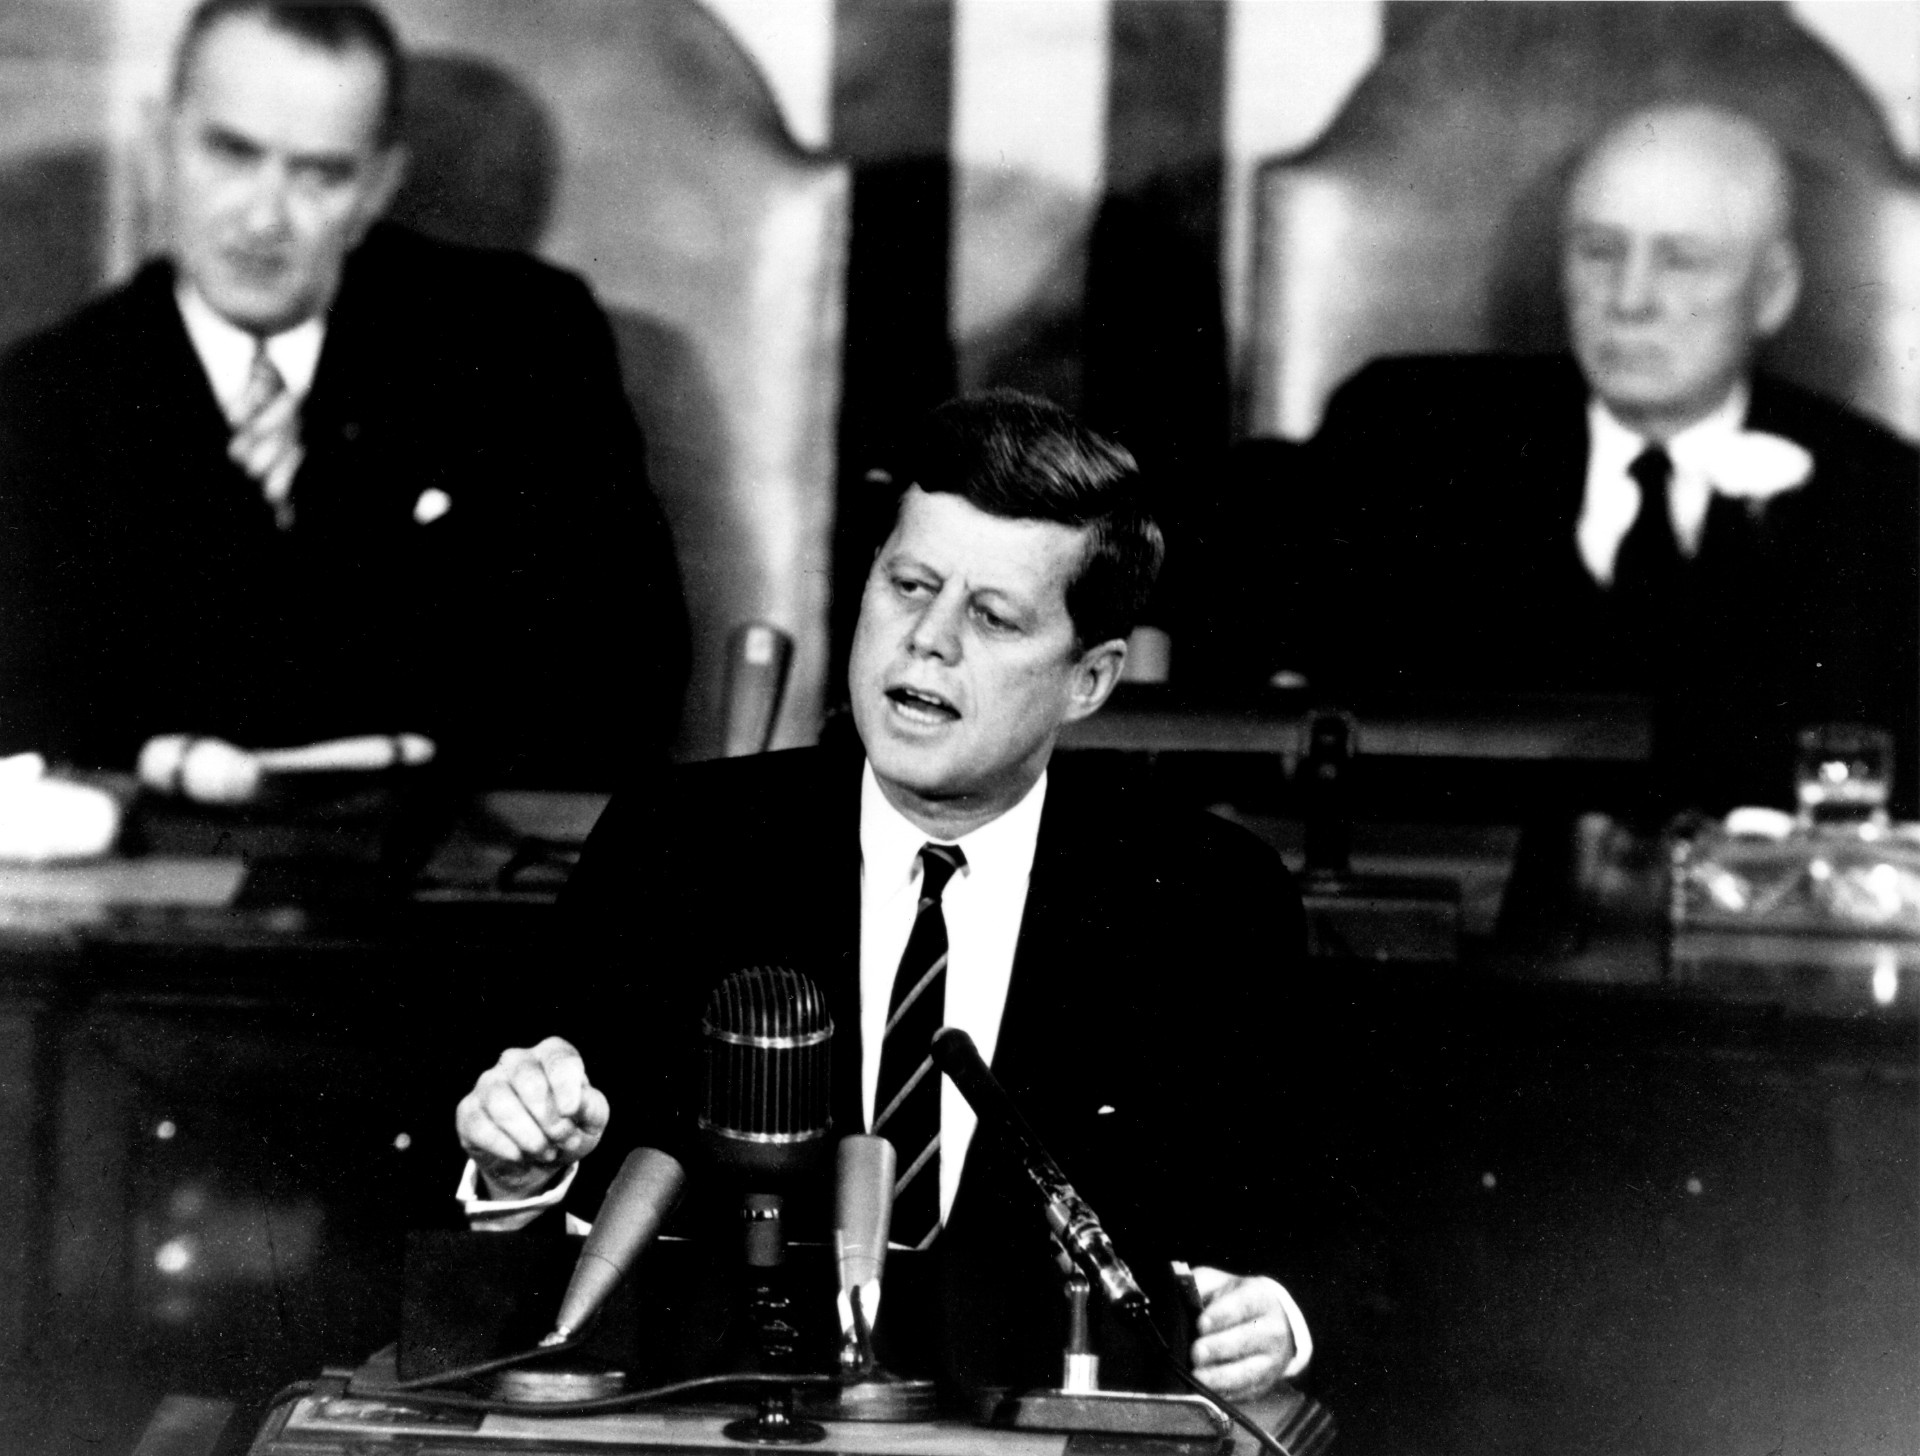 Black and white photo of President John F. Kennedy delivering speech announcing the USA's intention to land on the moon by the end of the 1960s